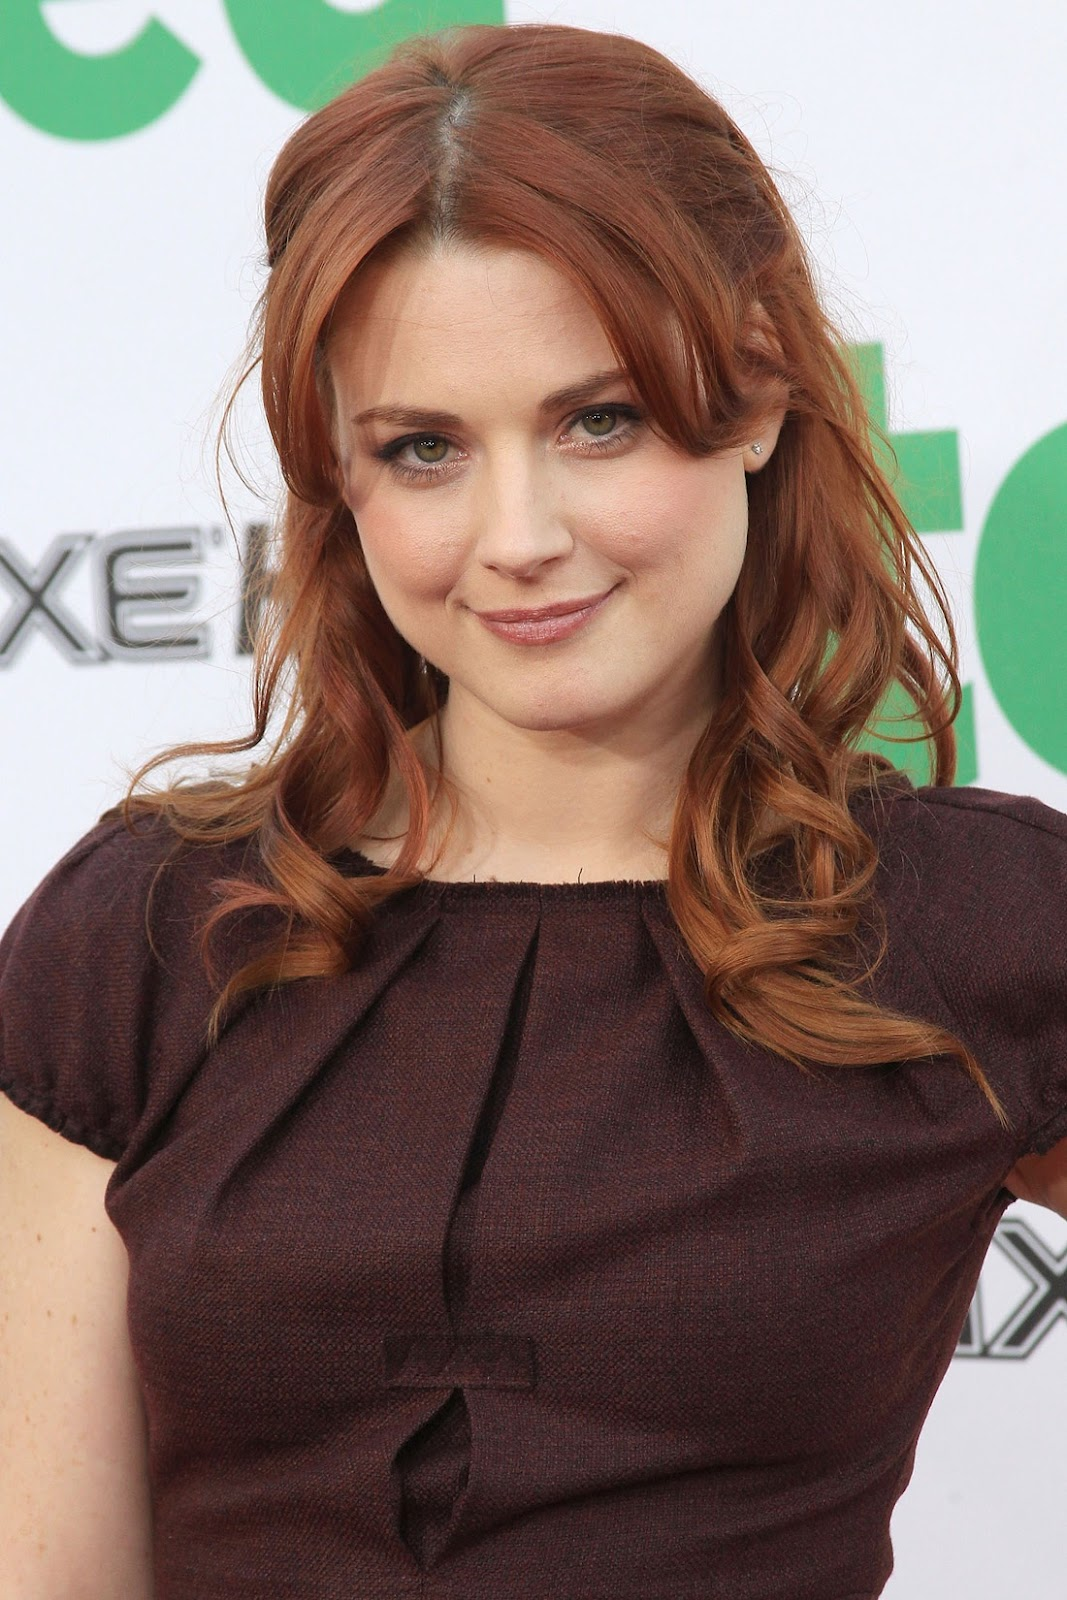 Alexandra breckenridge in zipper 2015 3 - 5 5